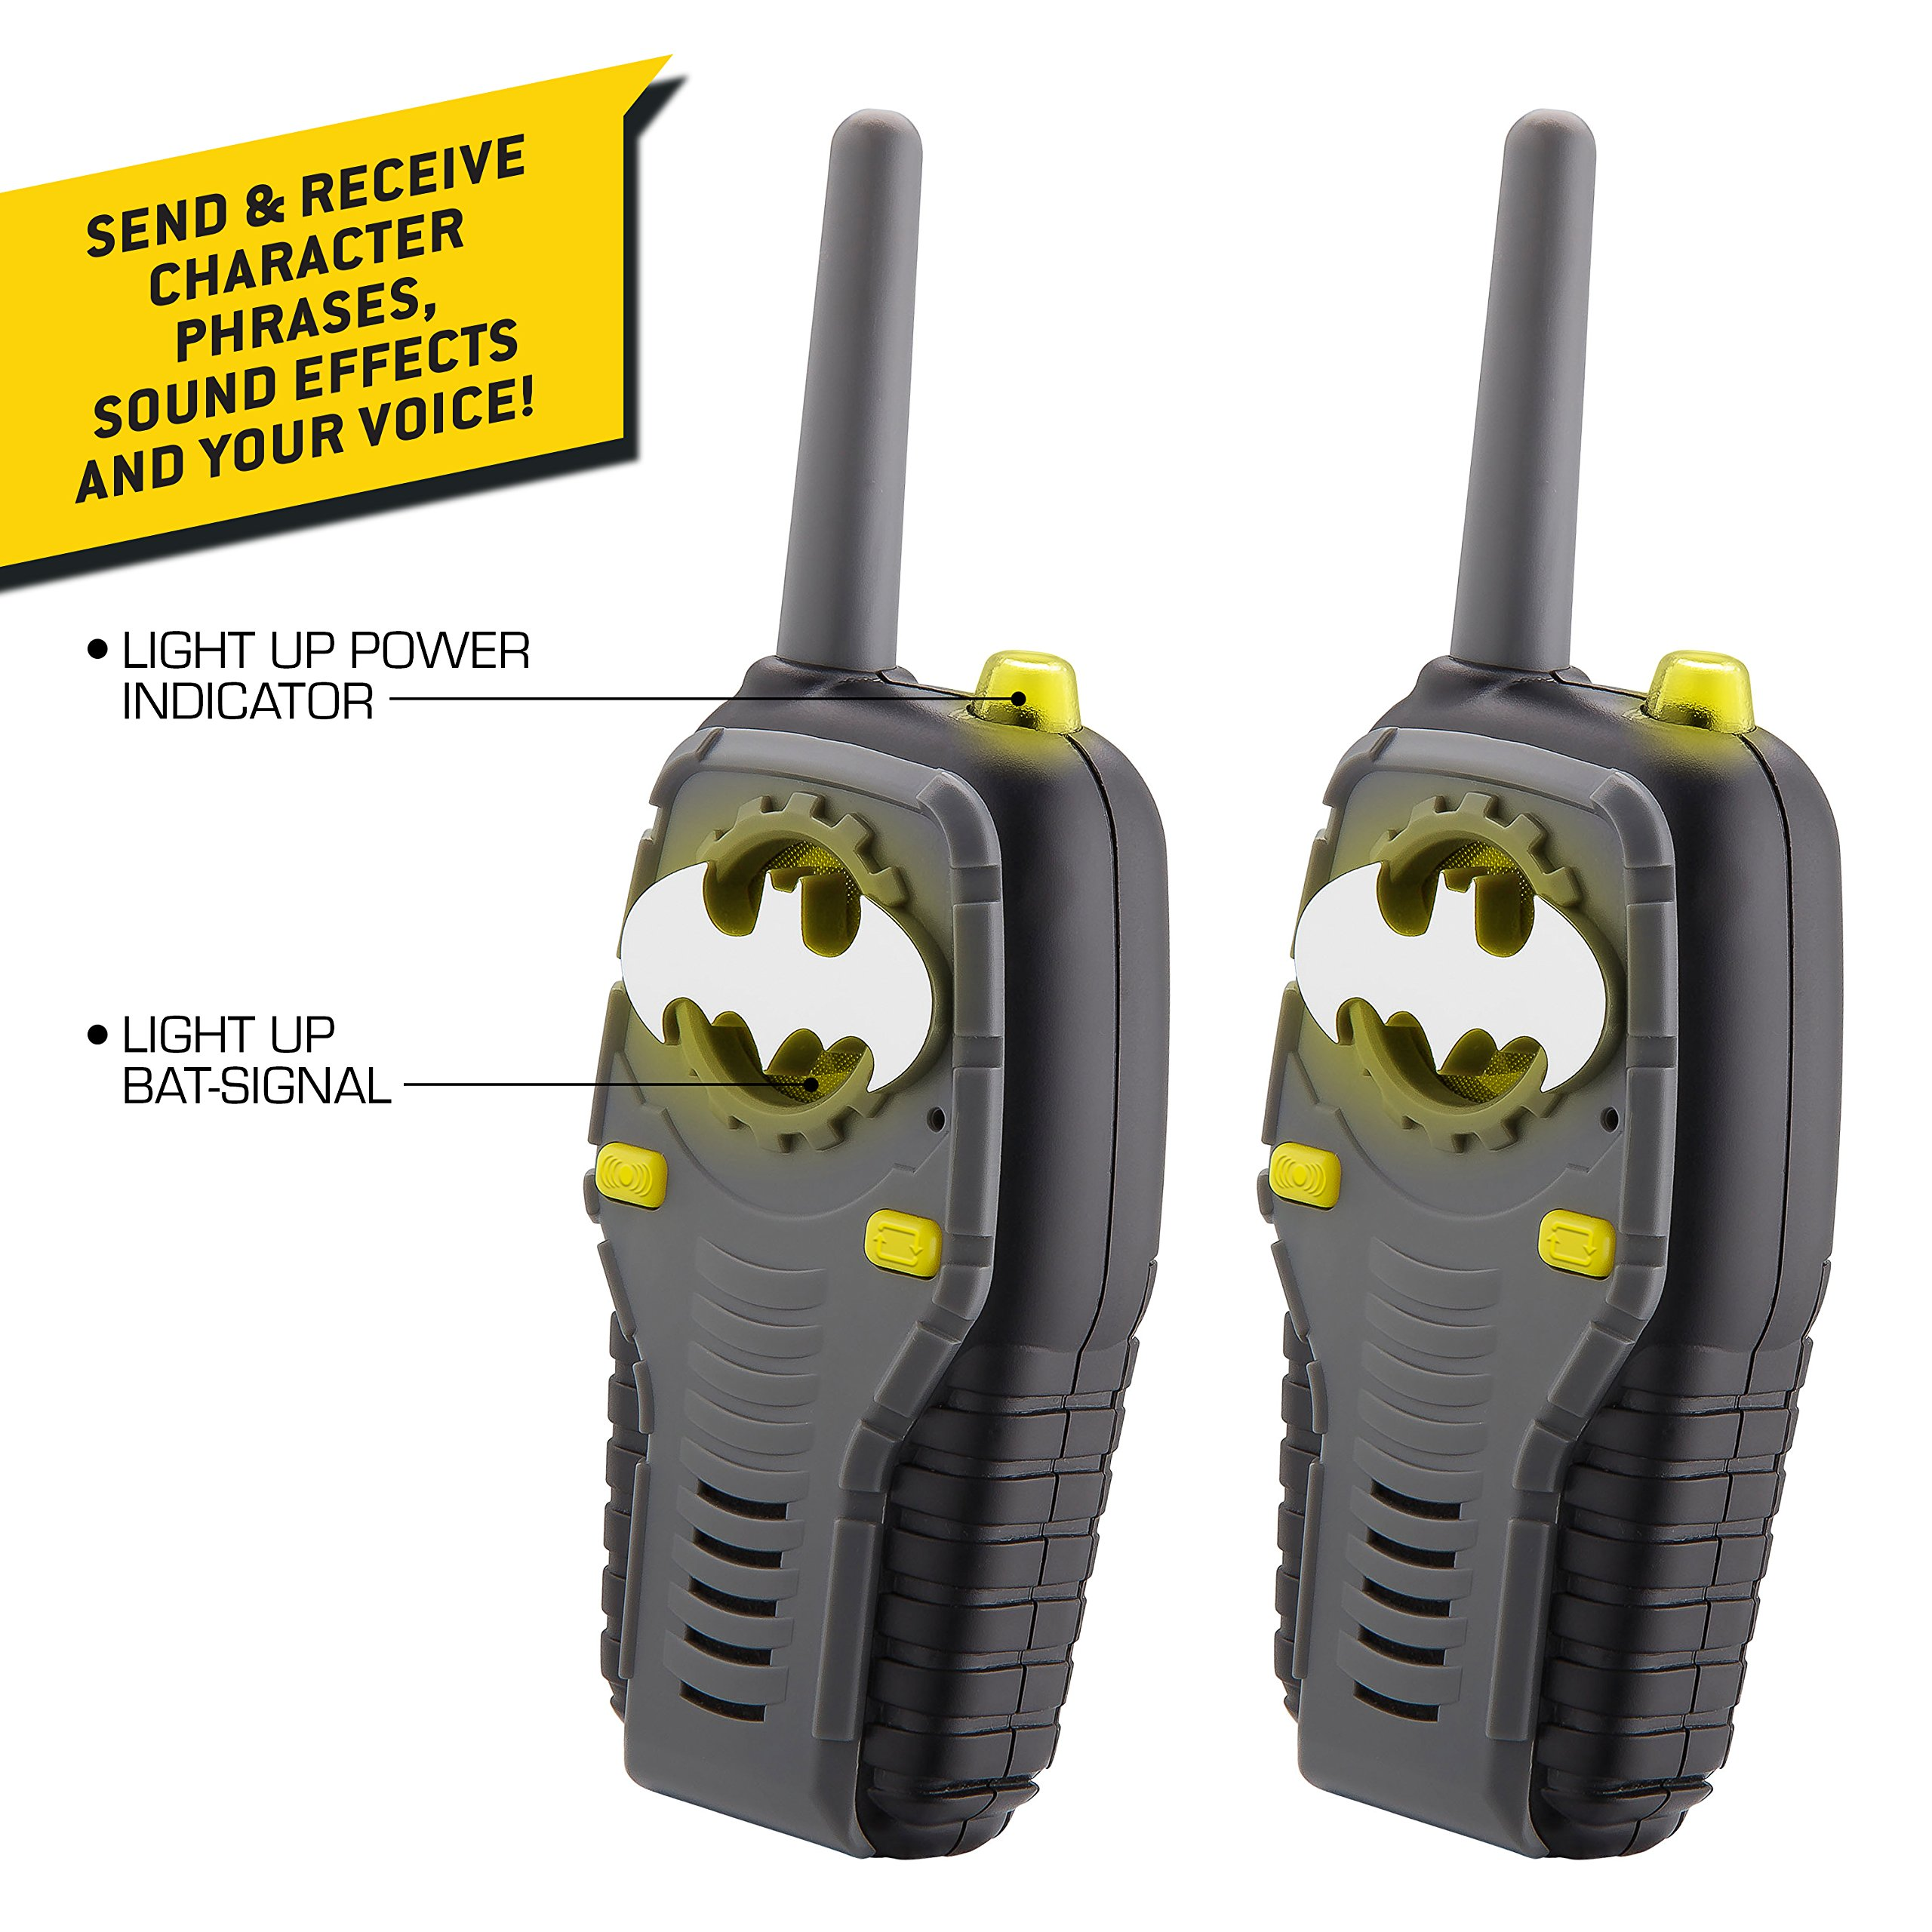 Batman FRS Walkie Talkies for Kids with Lights and Sounds Kid Friendly Easy to Use by eKids (Image #3)